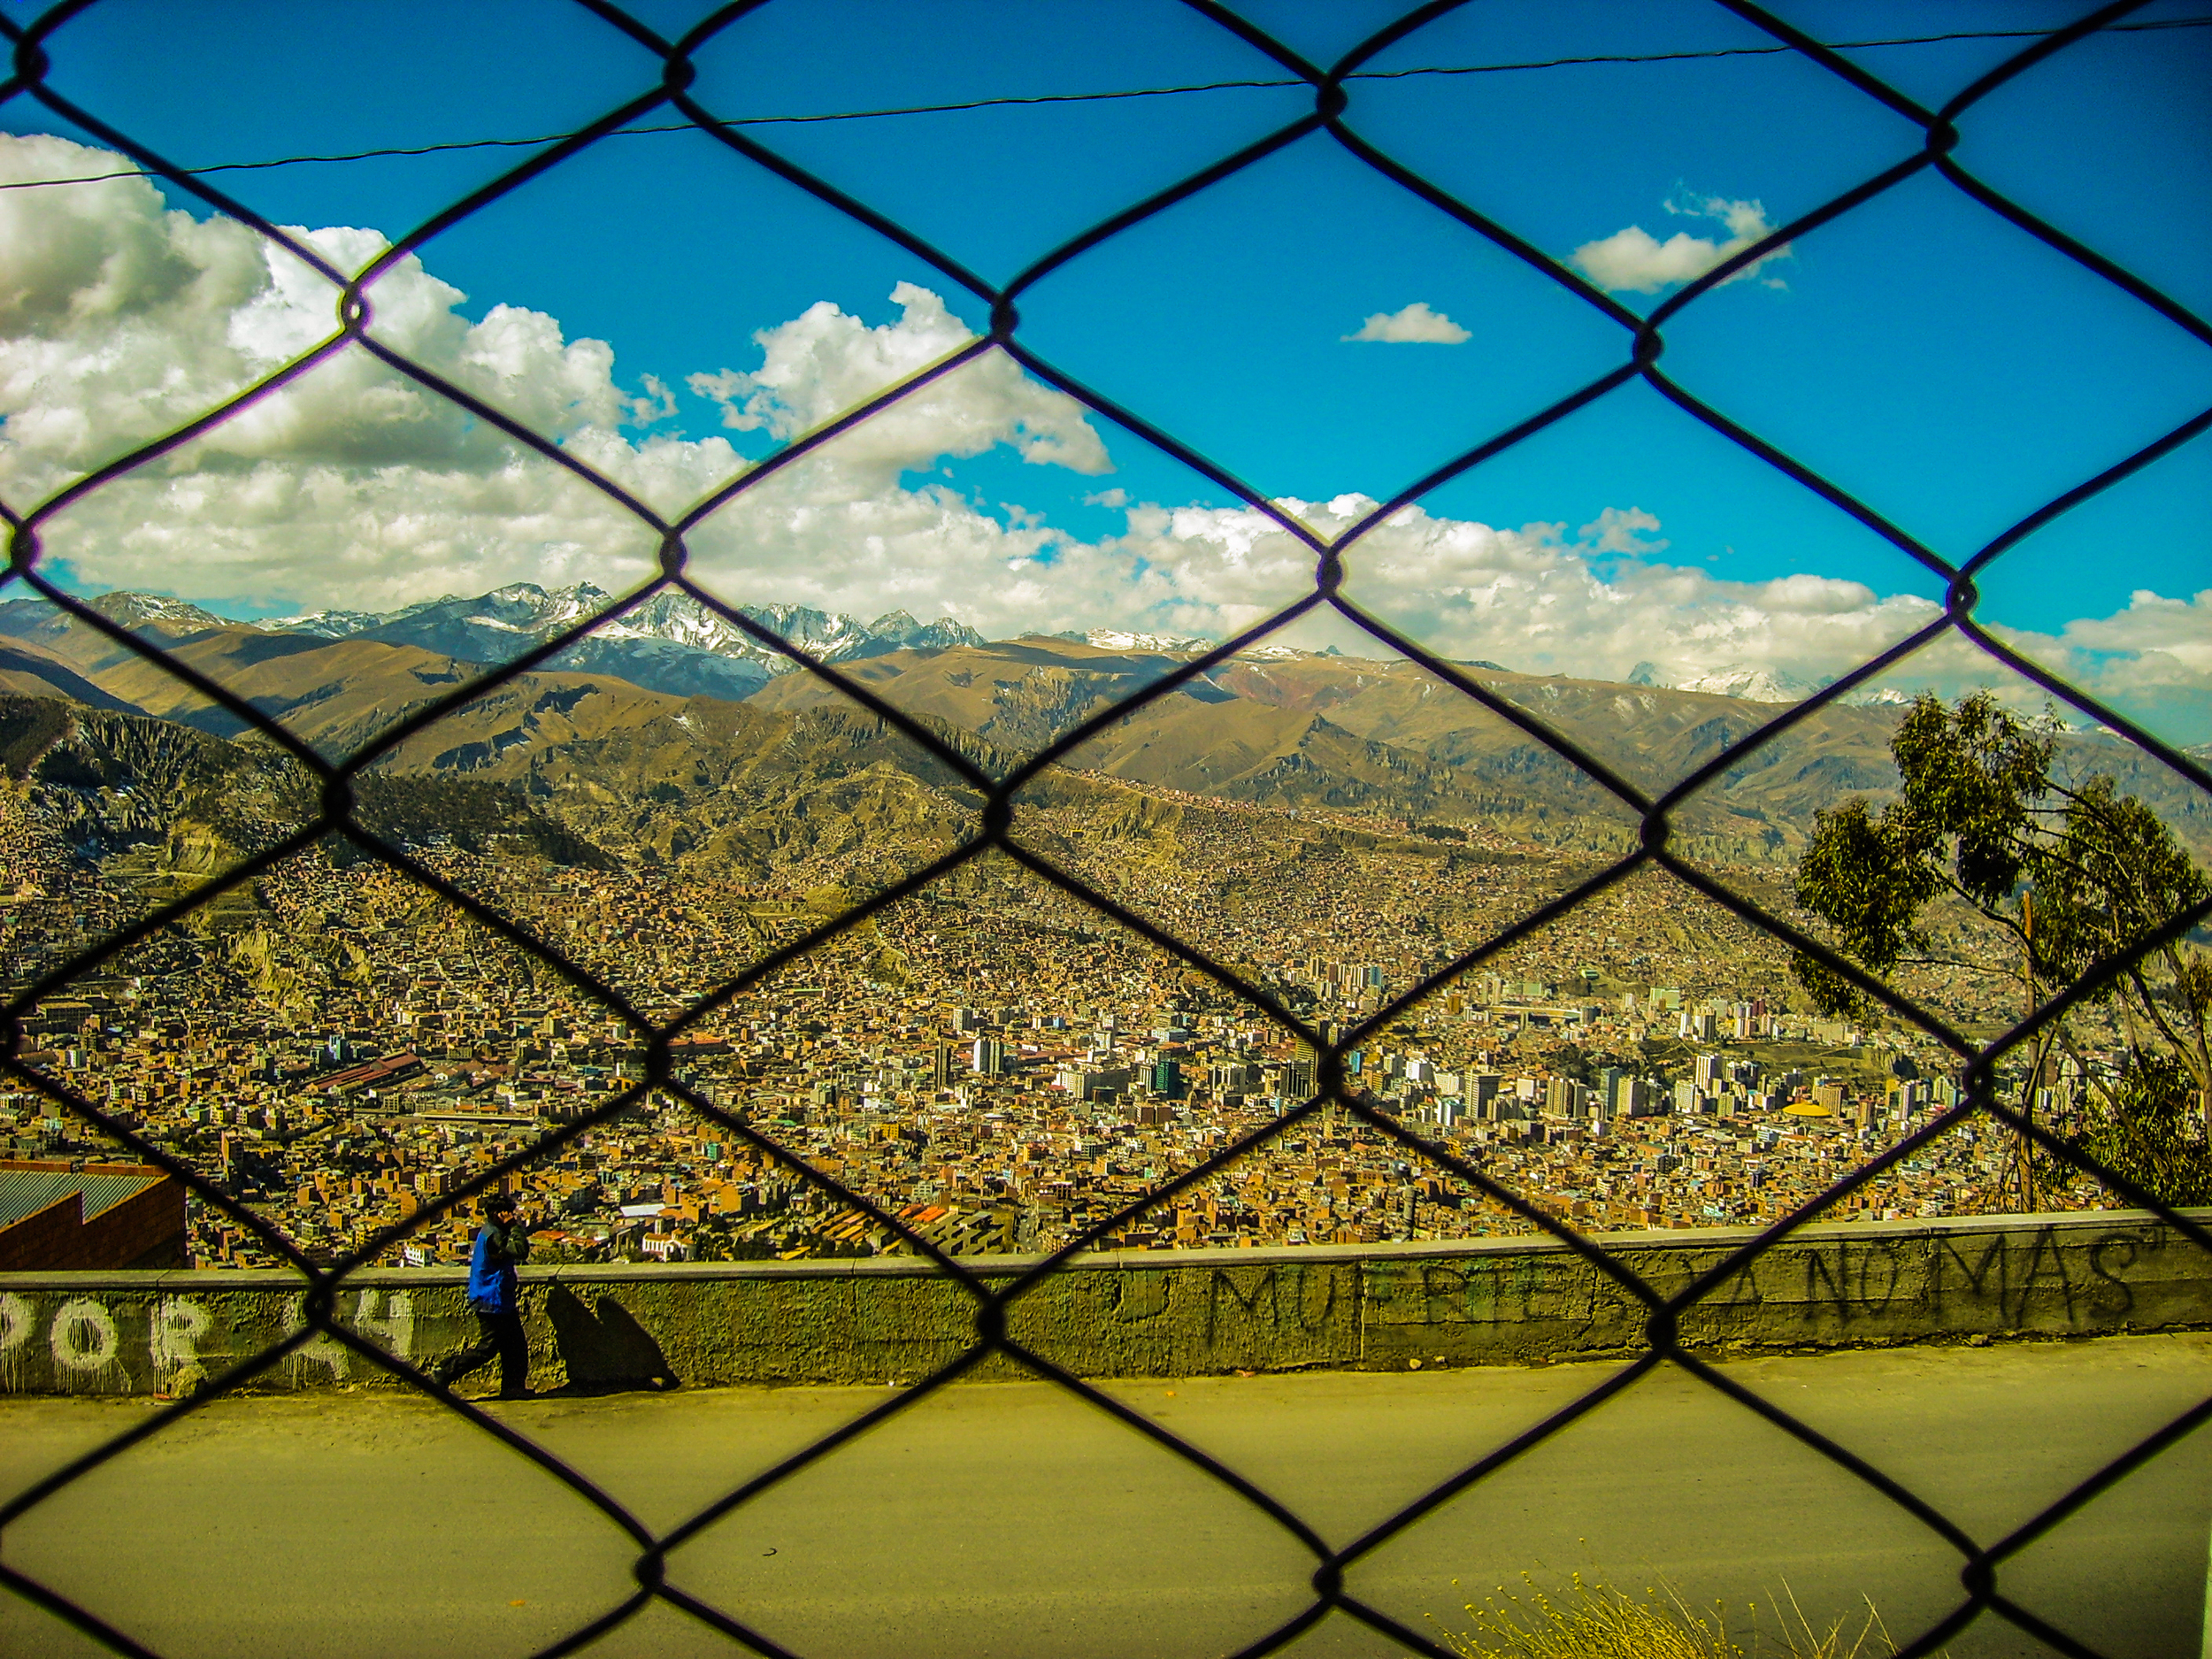 Edge of La Paz, Bolivia